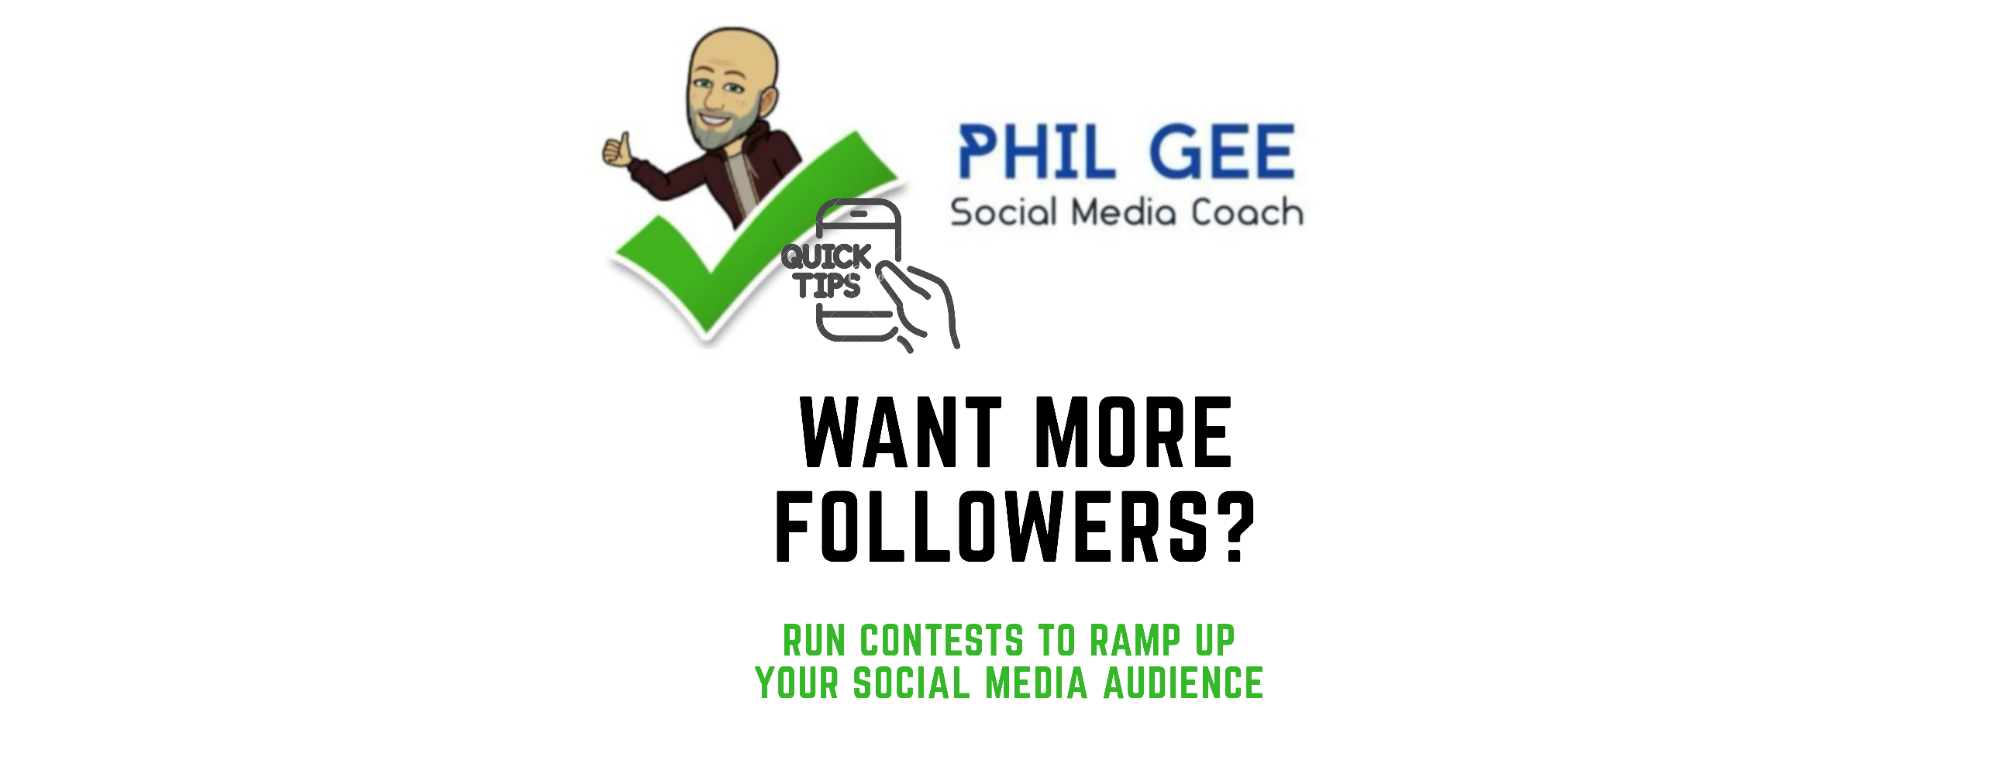 A quick way to build up your social media audience